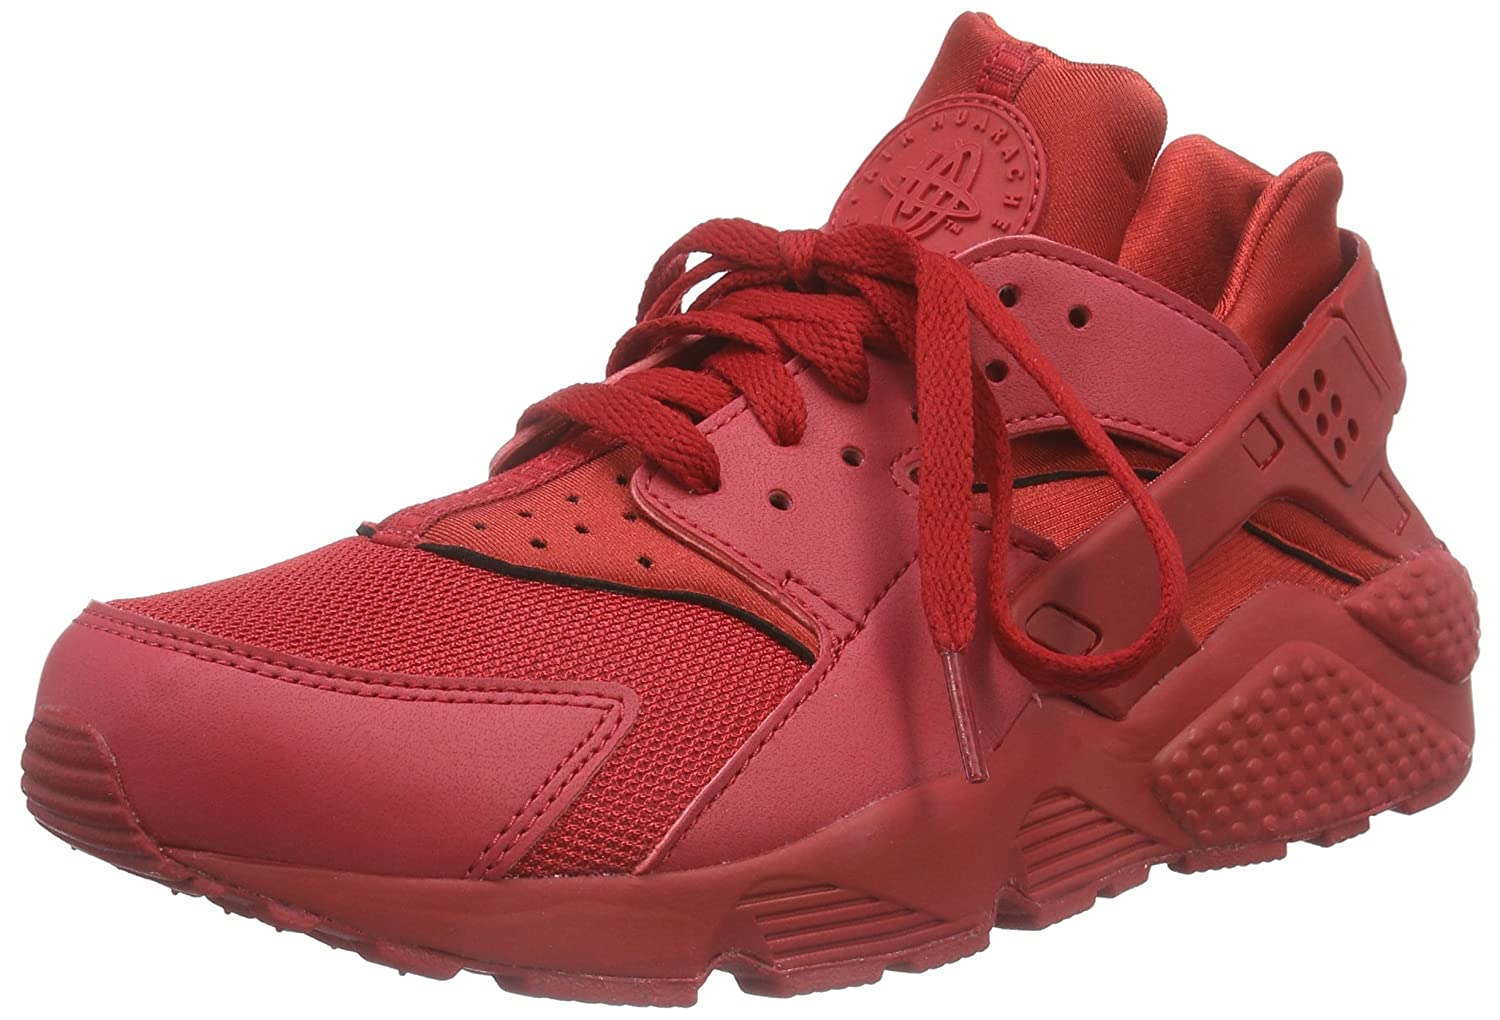 new style 05bbe 23803 Amazon.com  Nike Men s Air Huarache Running Shoe  Nike  Shoes